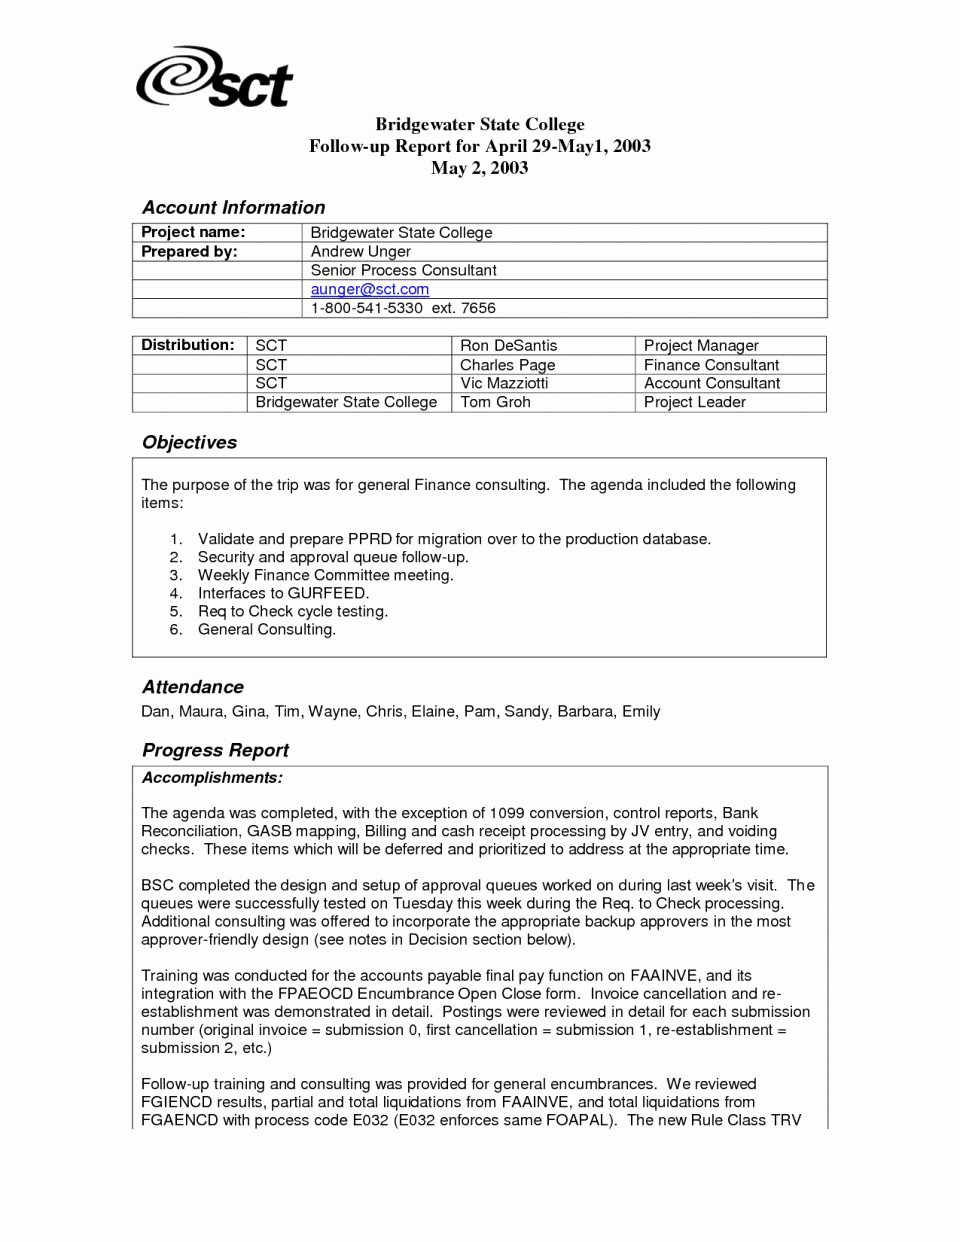 Business Trip Report Template Lovely Army Trip Reportte Word Microsoft Free Usmc Business